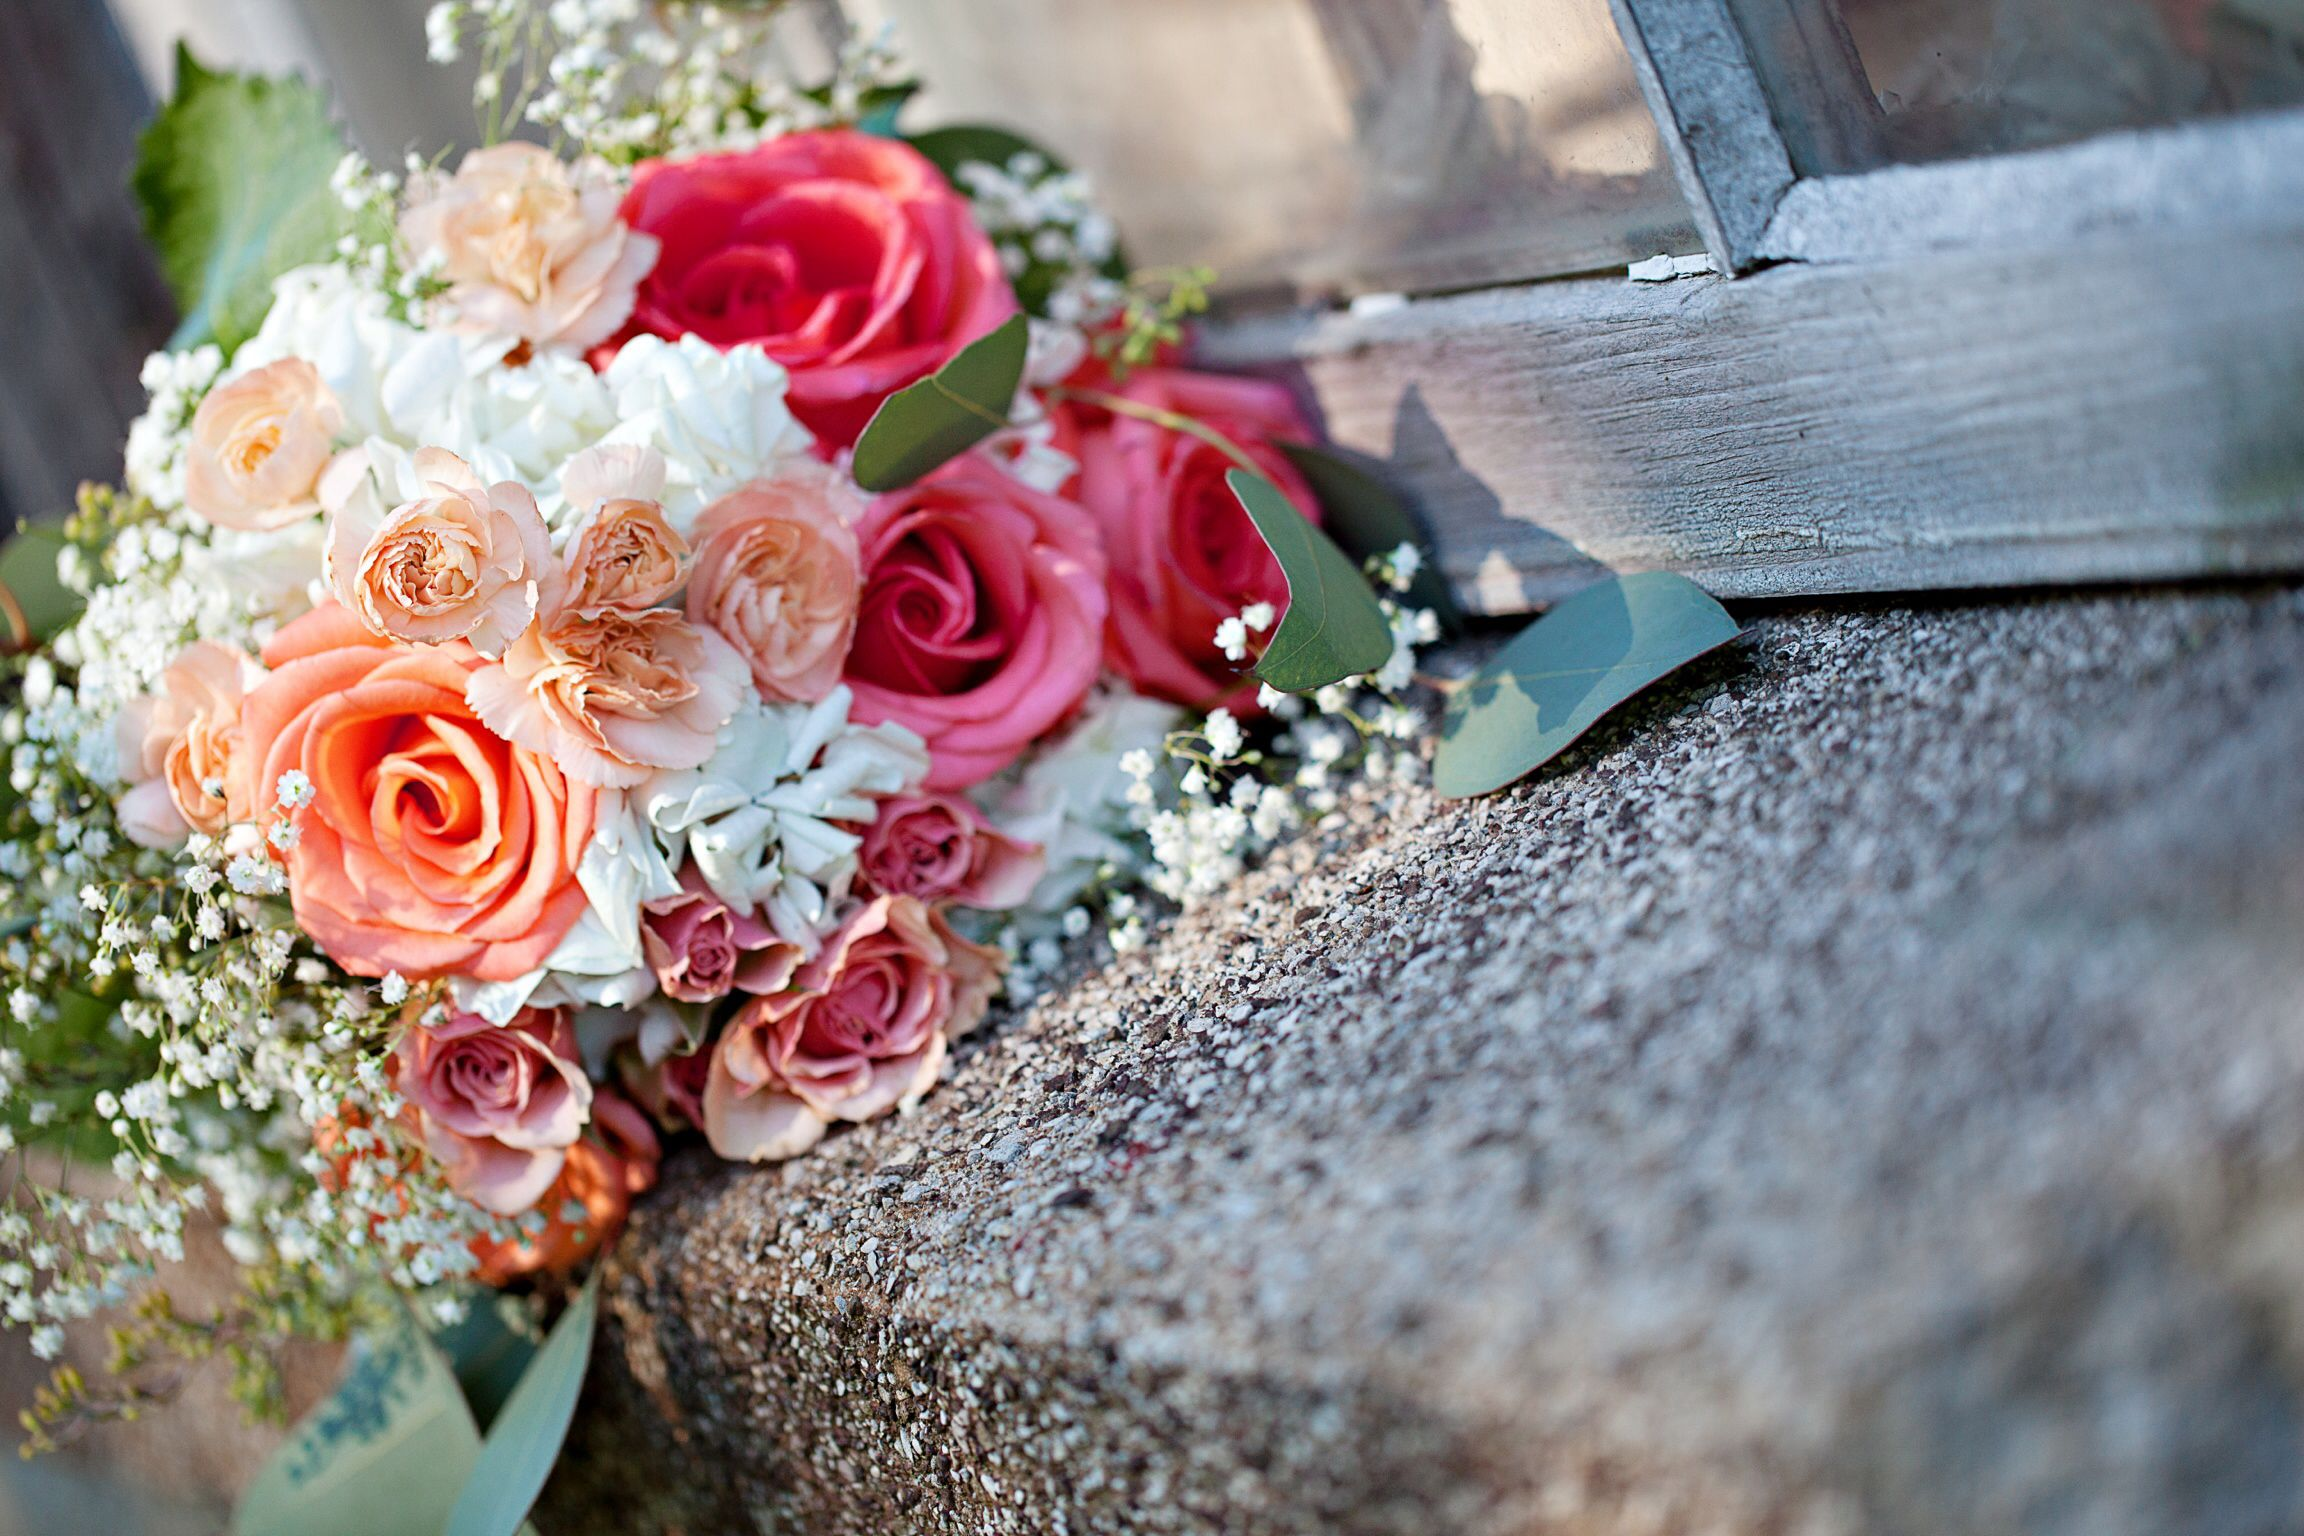 Bouquets (coral, peach, white)